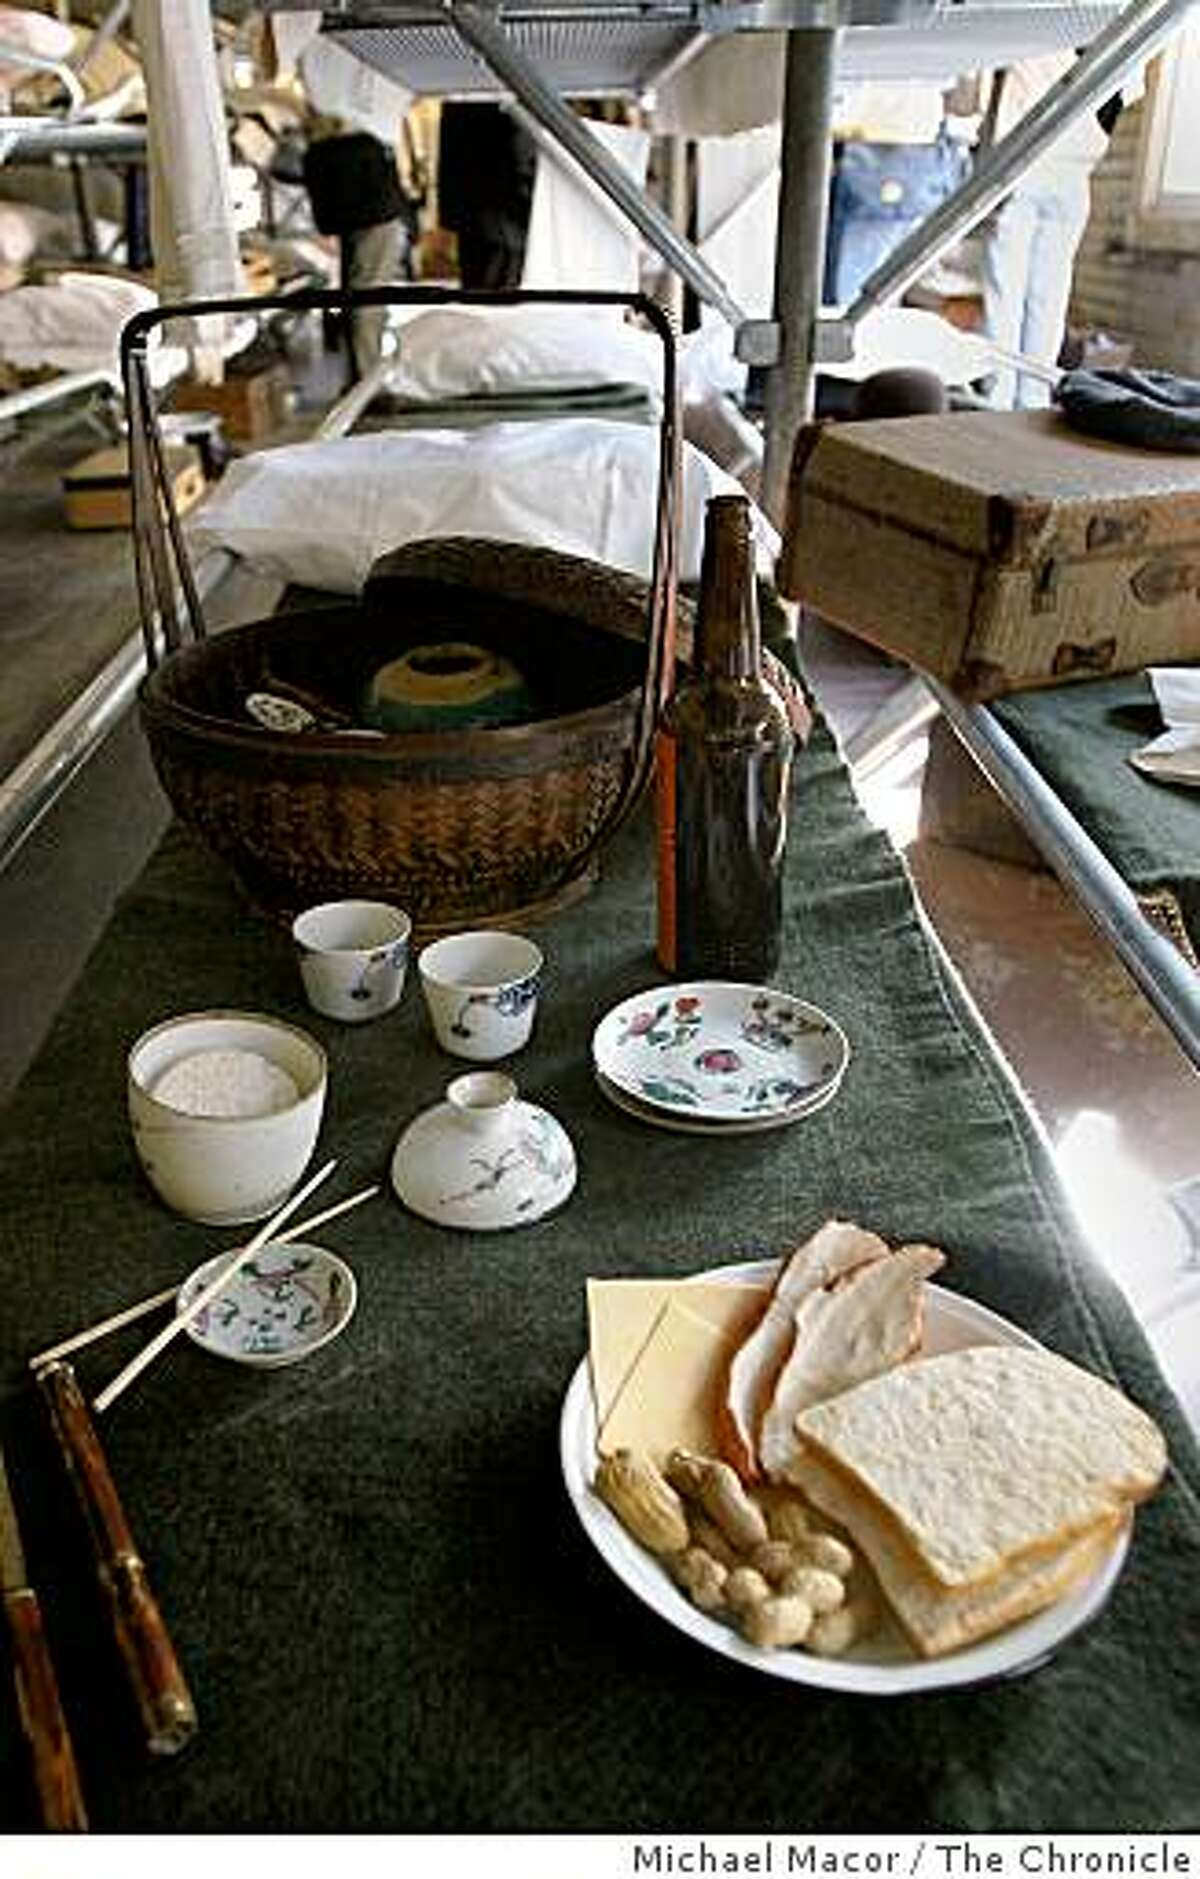 Details of the men's barracks have been recreated to reflect what life was like for Chinese immigrants who arrive at the Angel Island Immigration Center, in Tiburon, Calif. waiting for approval to come into America.